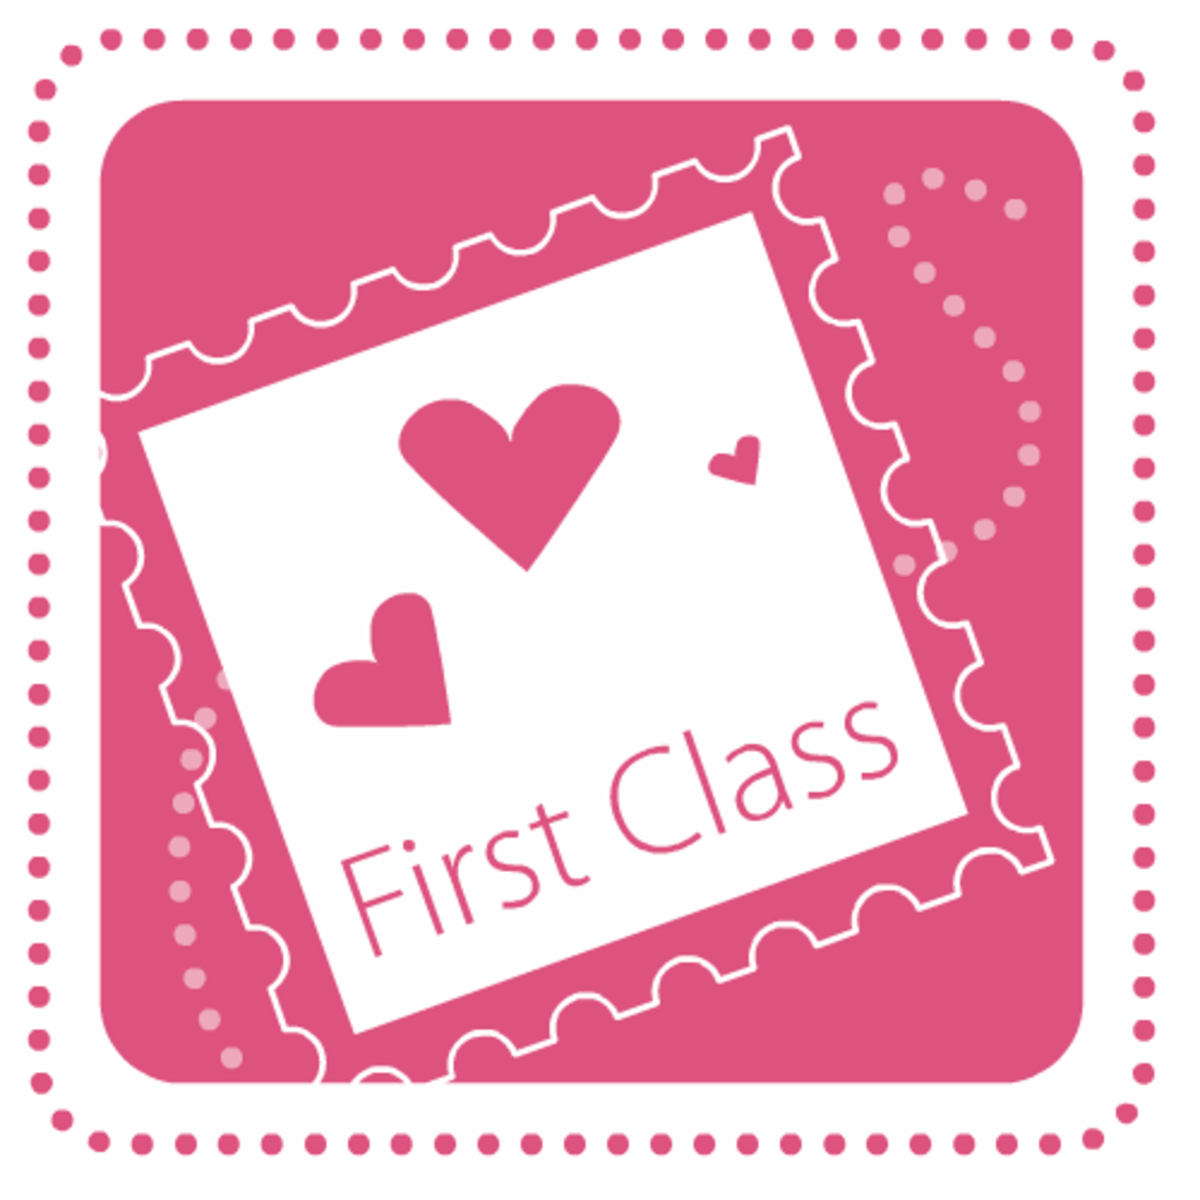 First Class with hearts stamp Valentine's Day clip art